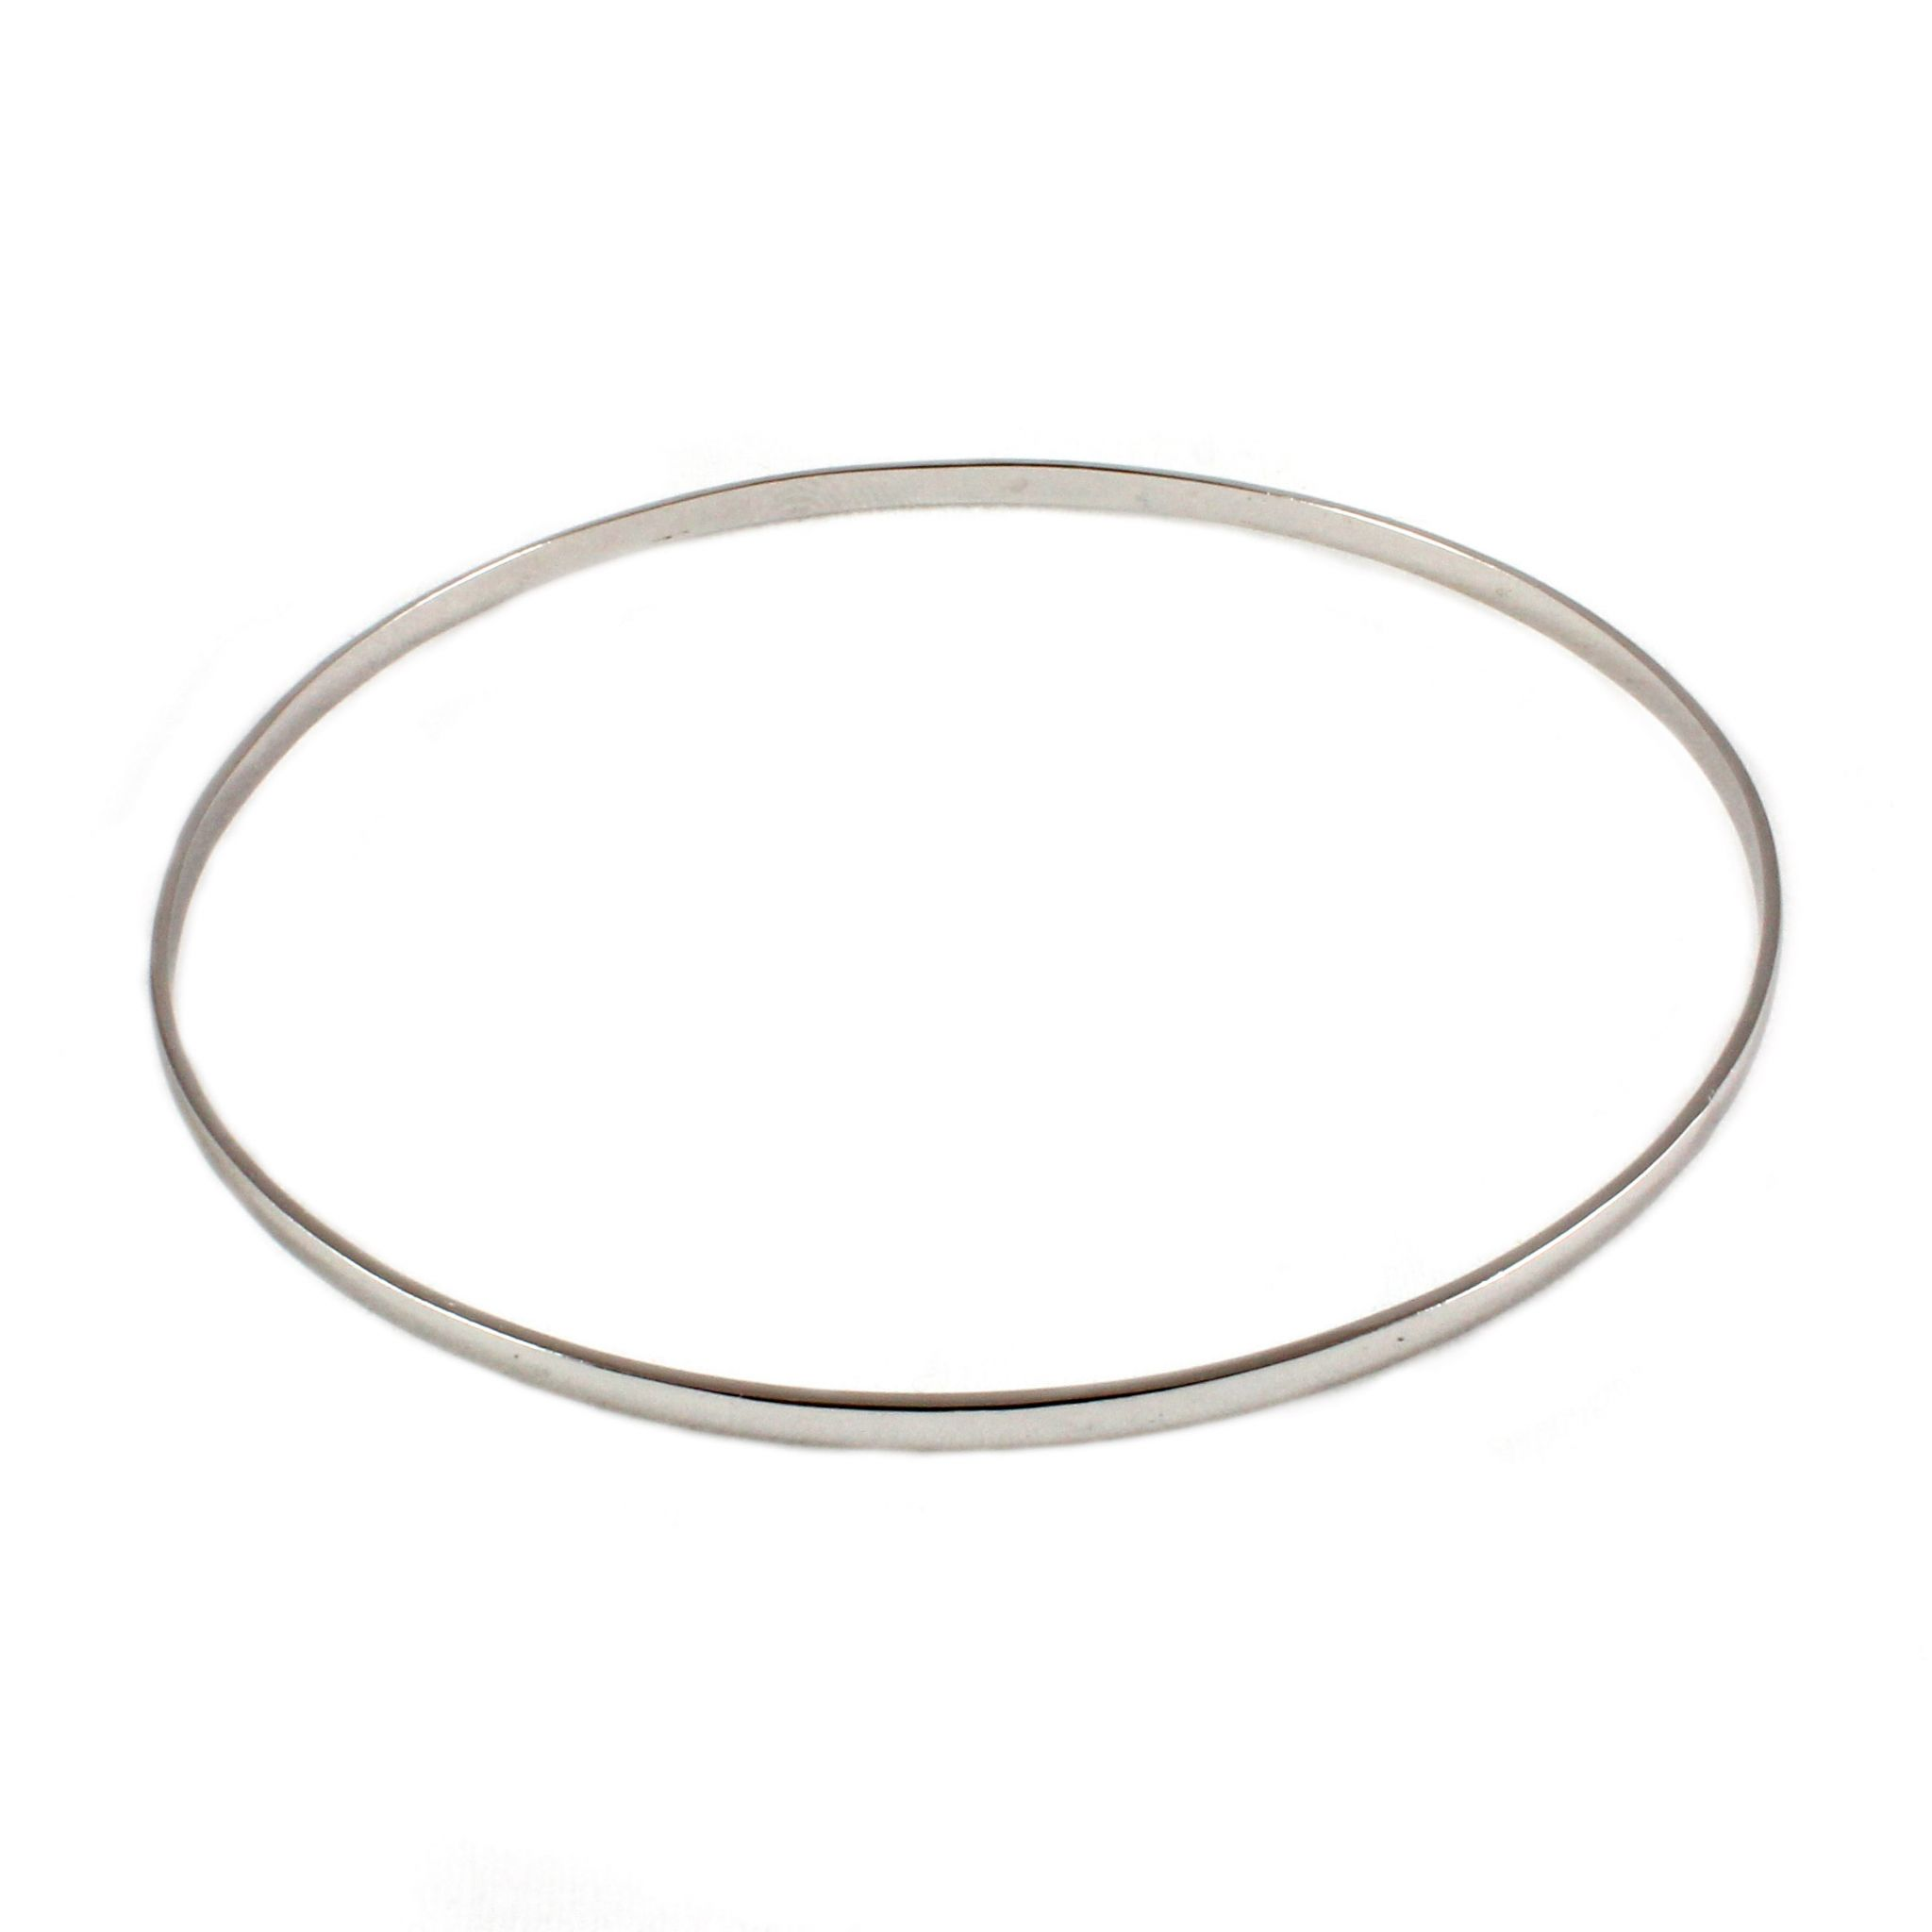 silver length bracelets p sterling bangles width plain polished bracelet weight slip grams bangle on solid